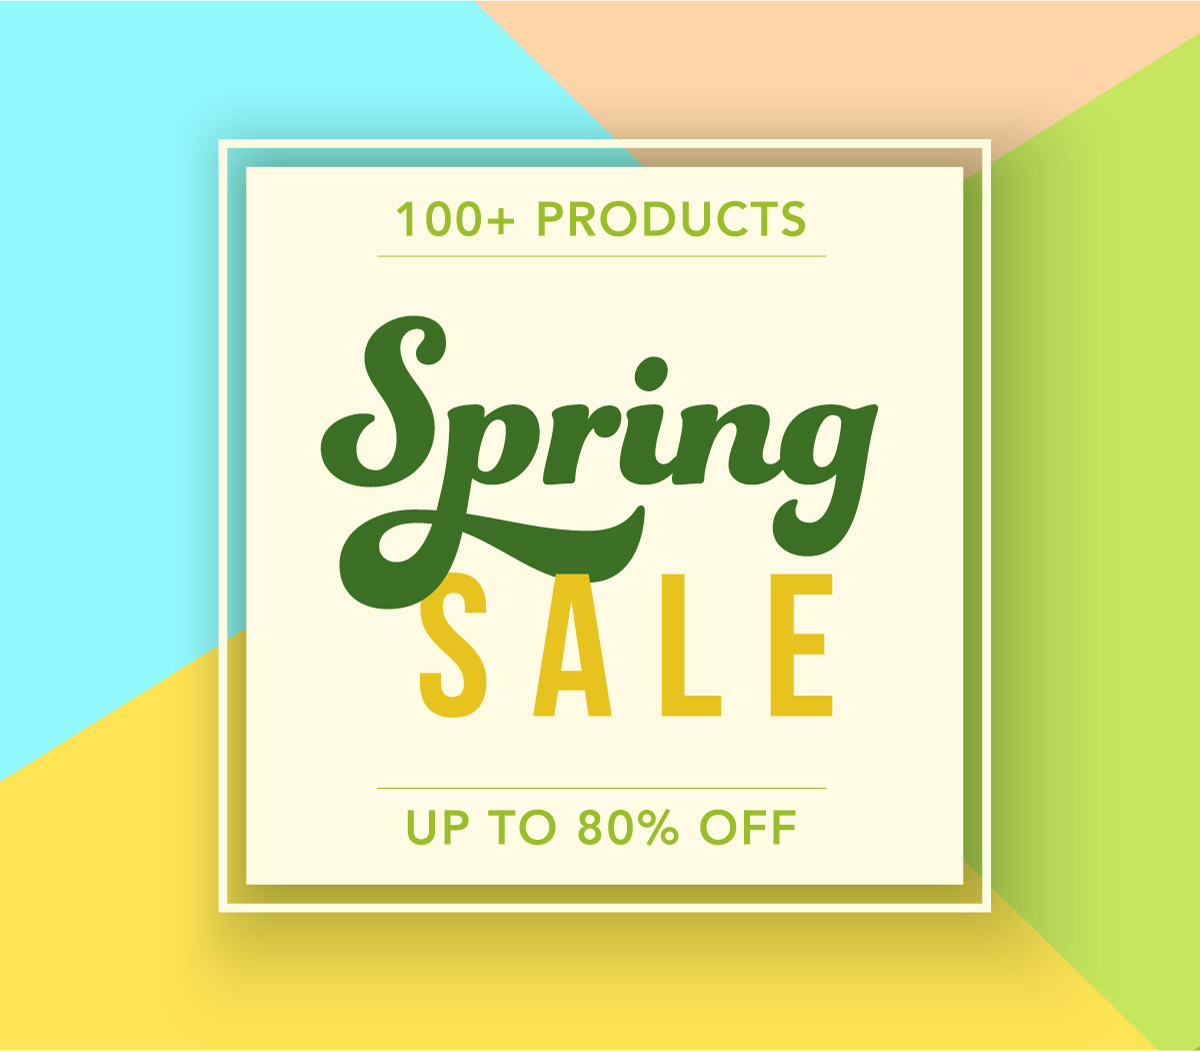 SPRING SALE - UP TO 80% OFF